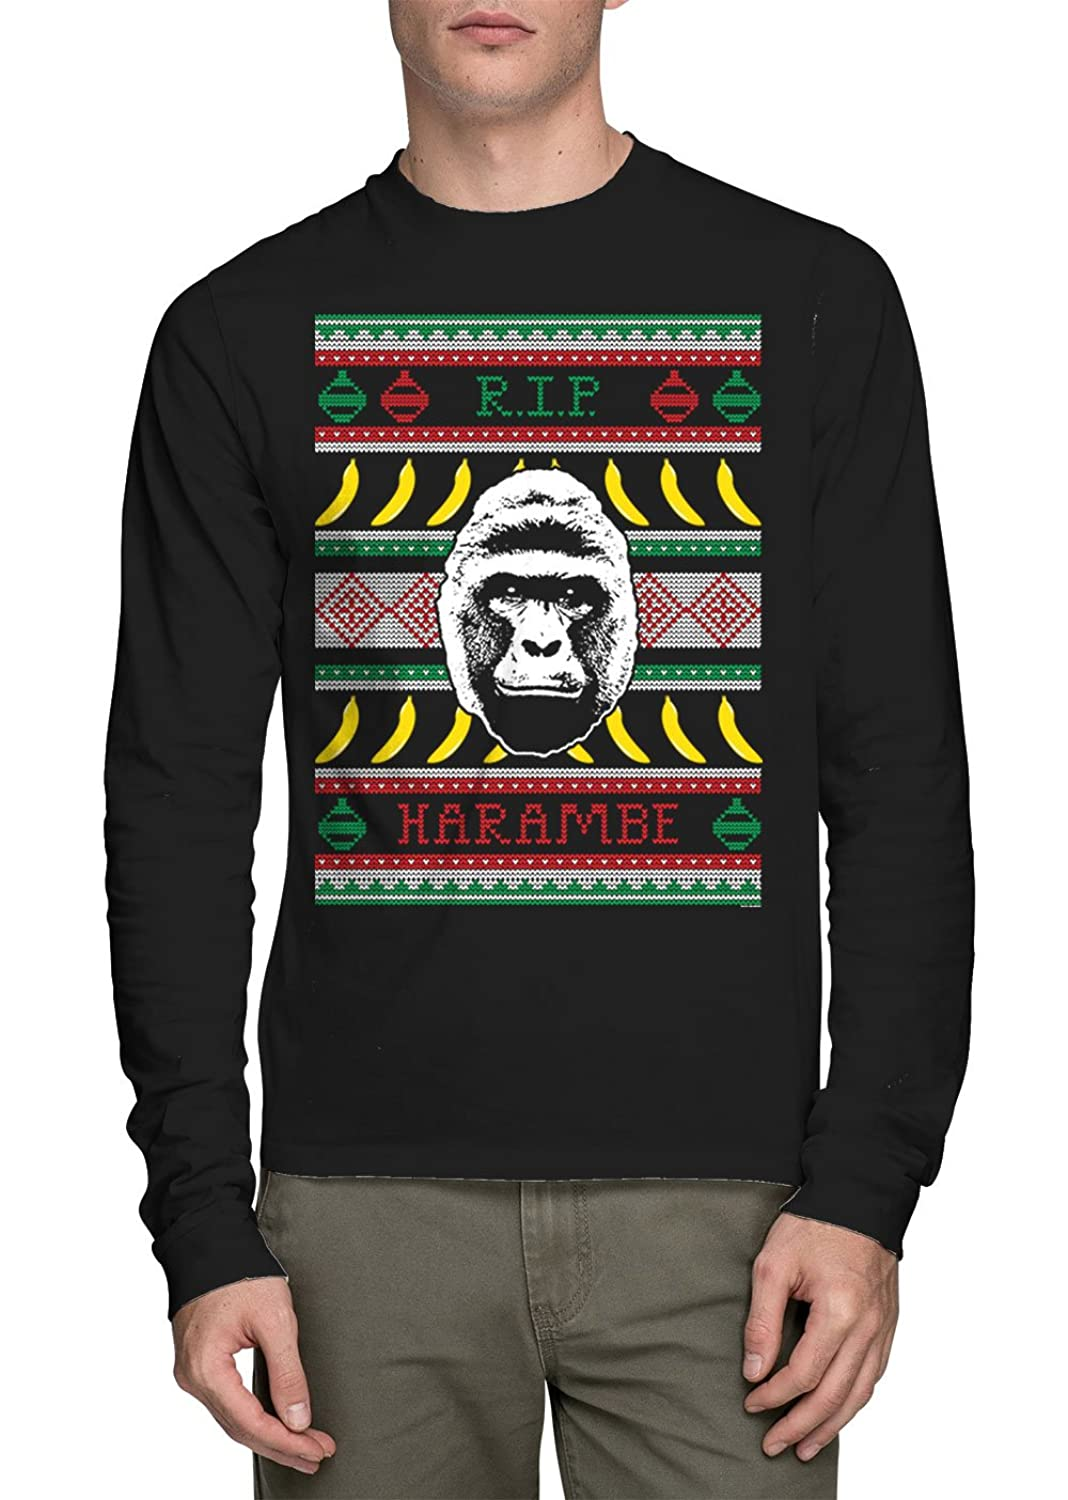 long sleeve mens rip harambe ugly christmas sweater shirt jpg 1068x1500 sweater anti harambe